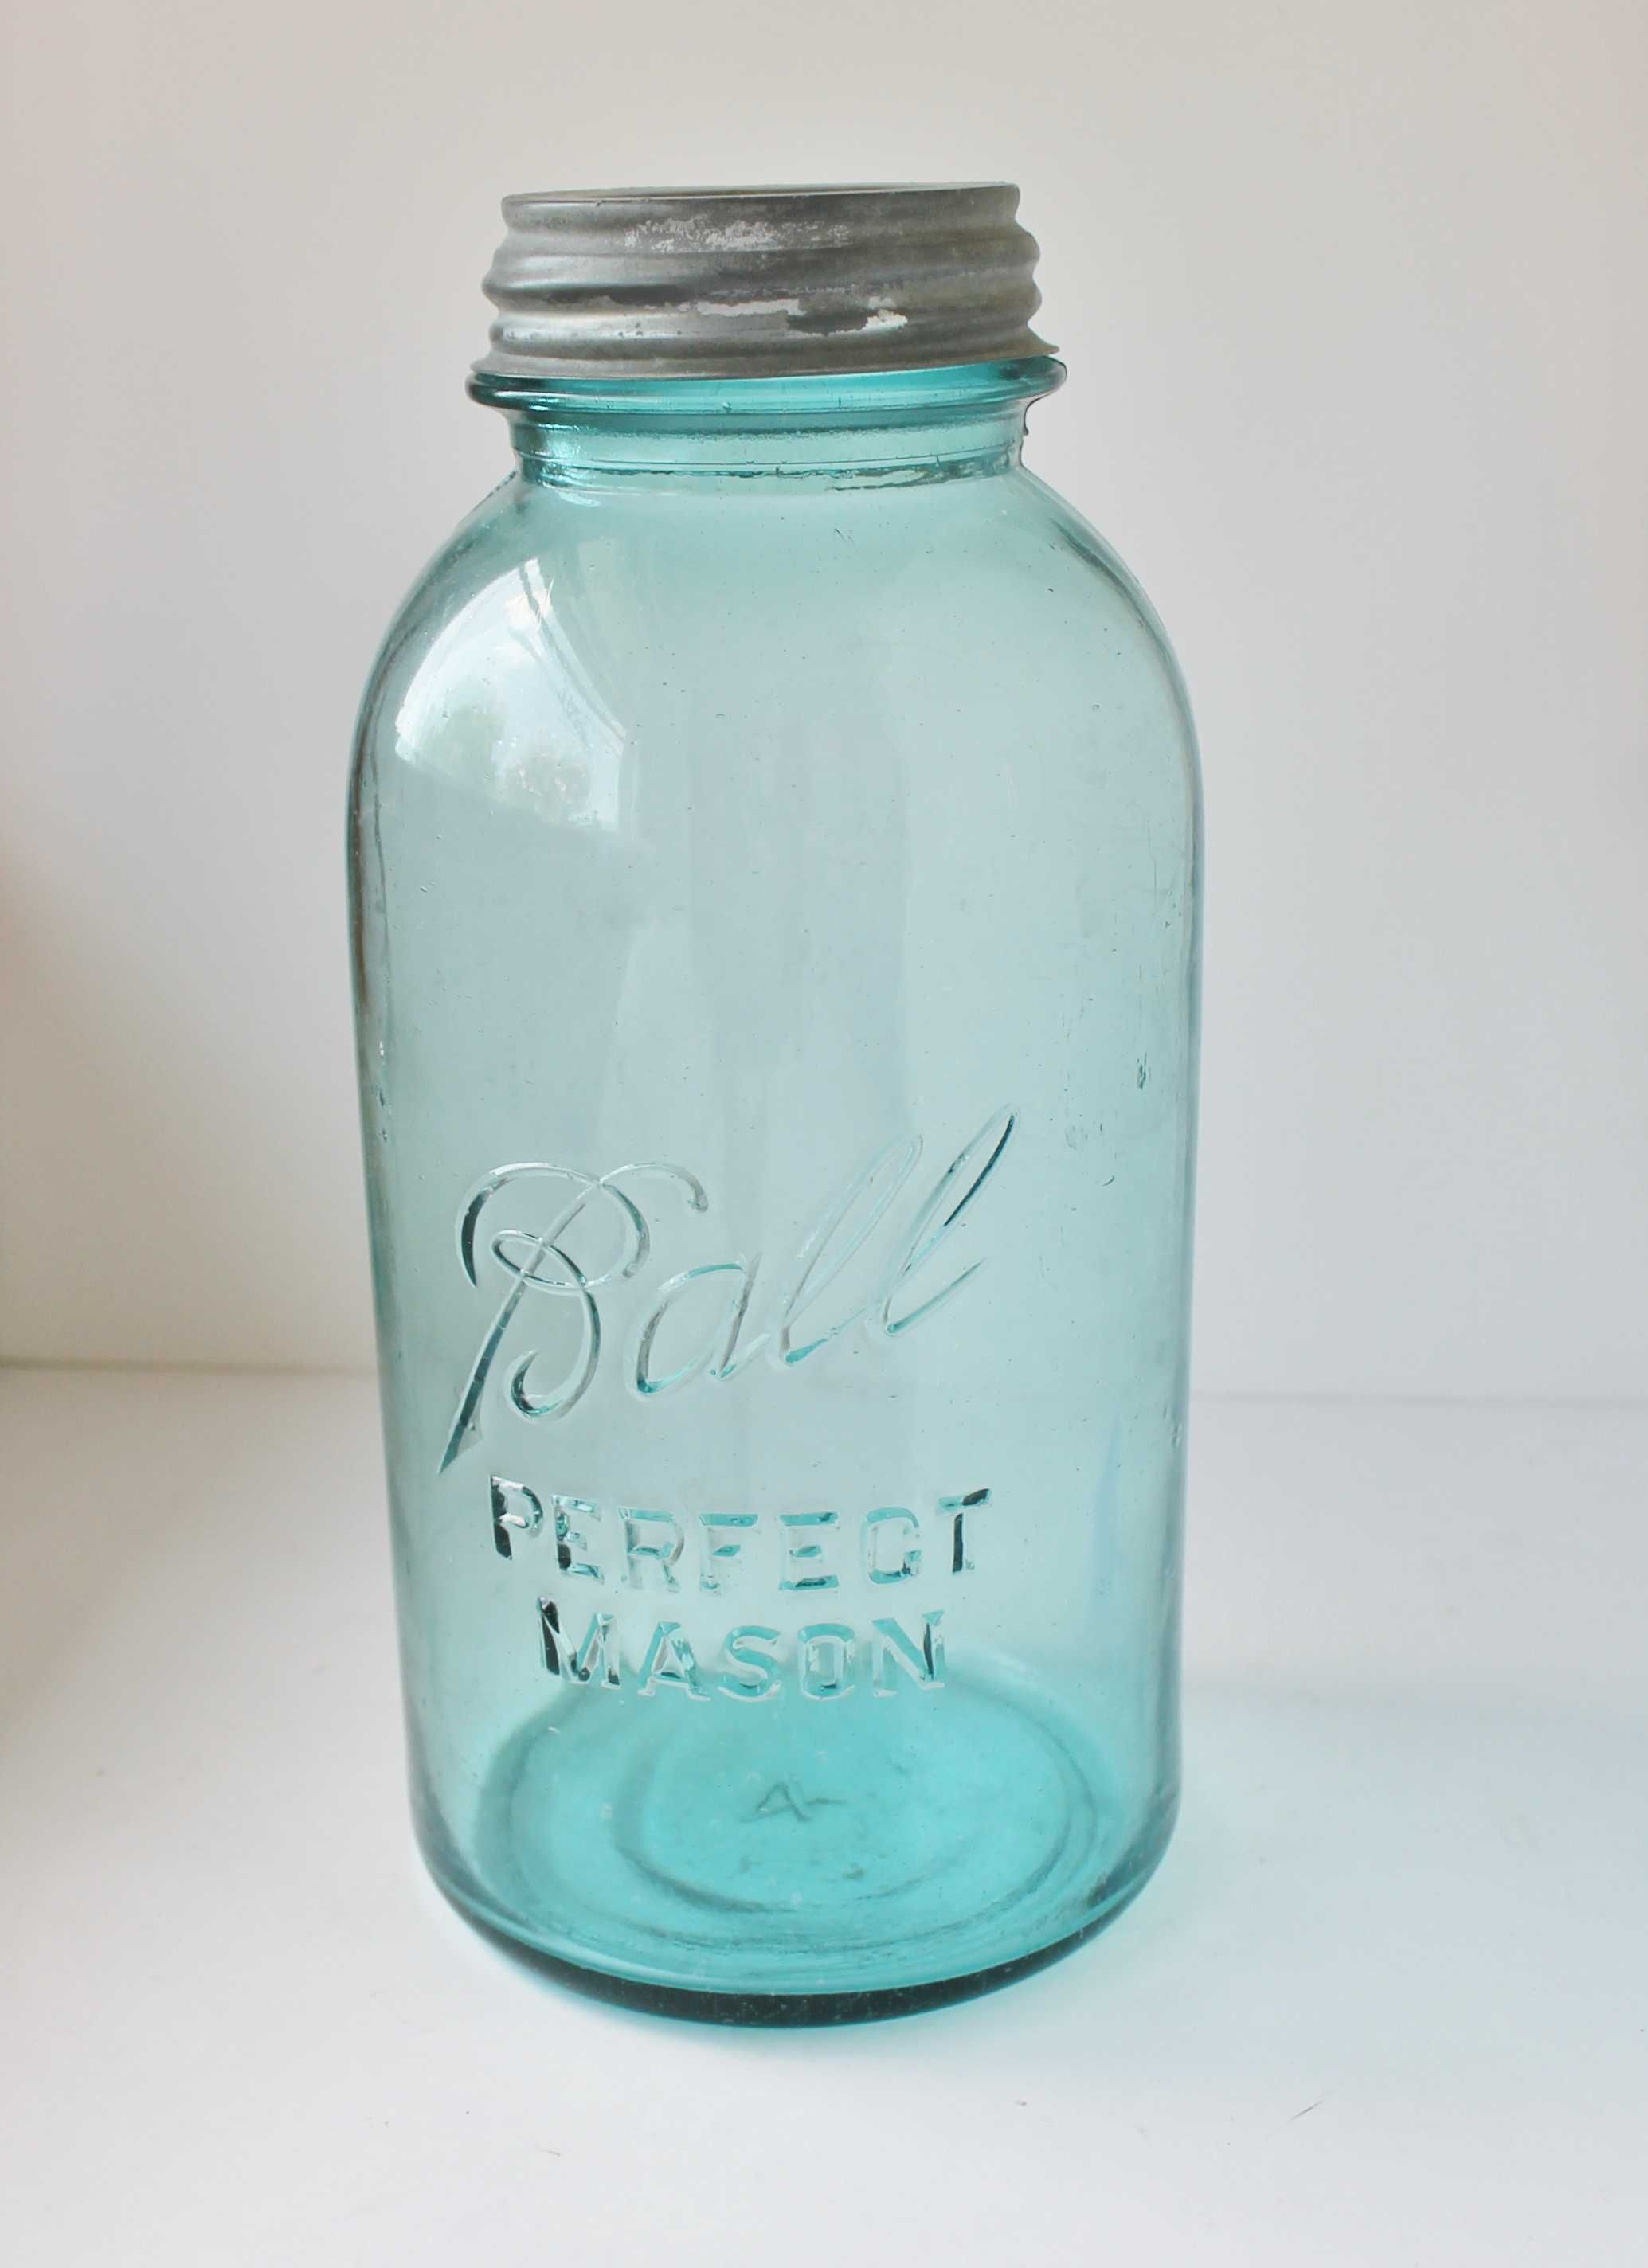 Antique Vintage Canning Jar Price Guide Canning Jars Jar